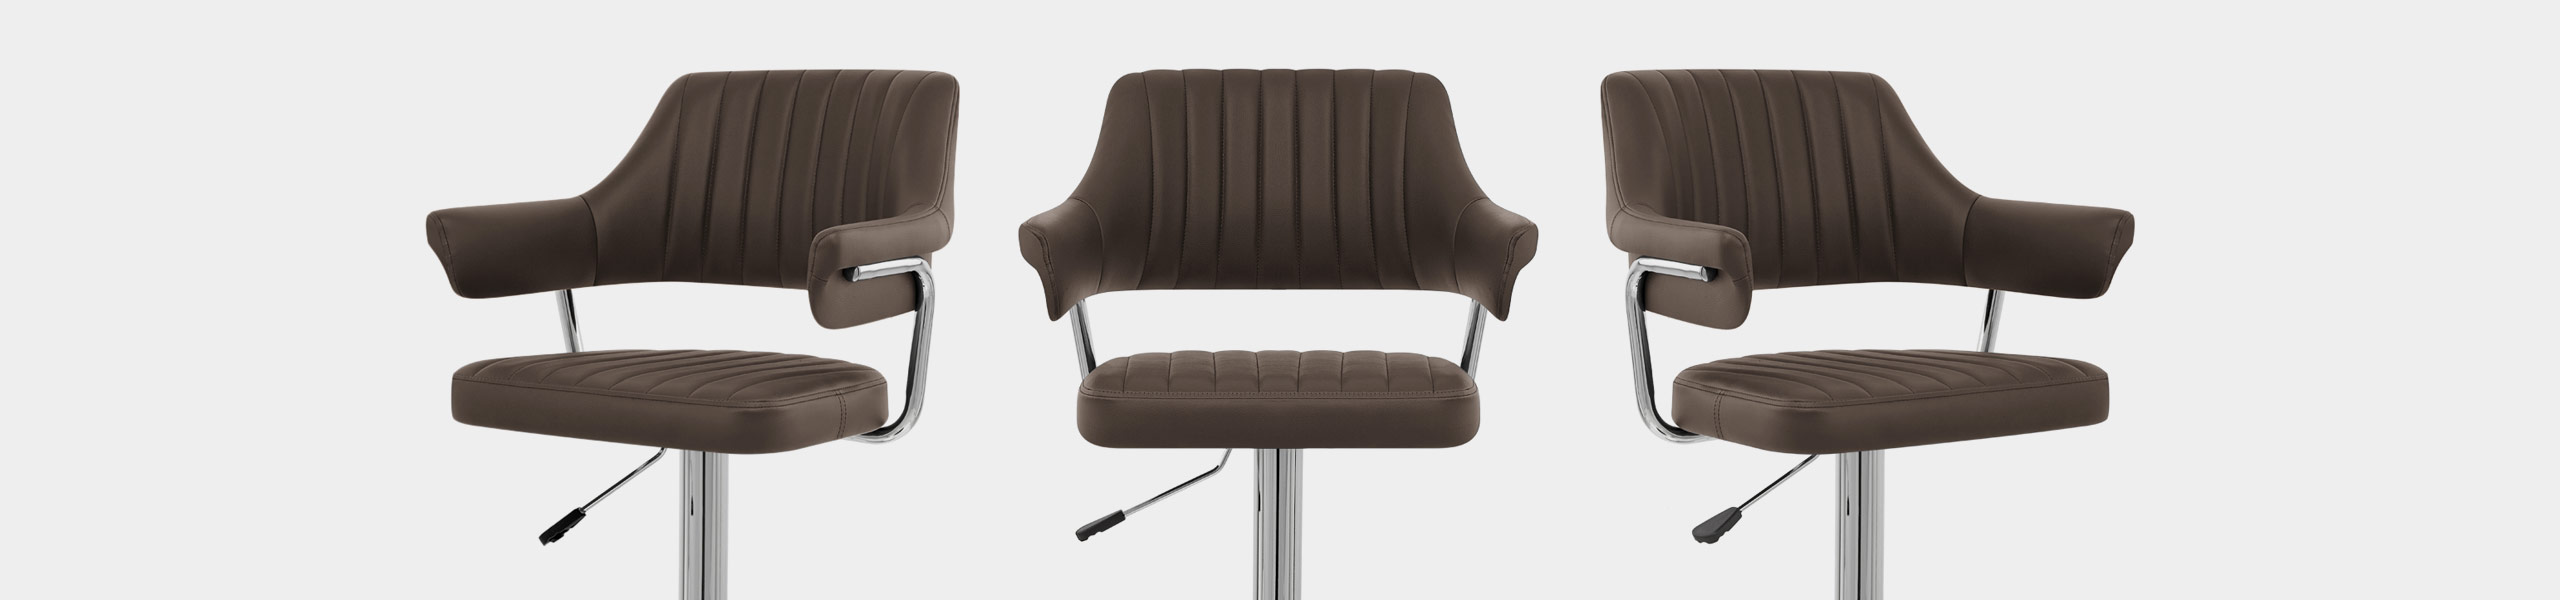 Skyline Bar Chair Brown Video Banner